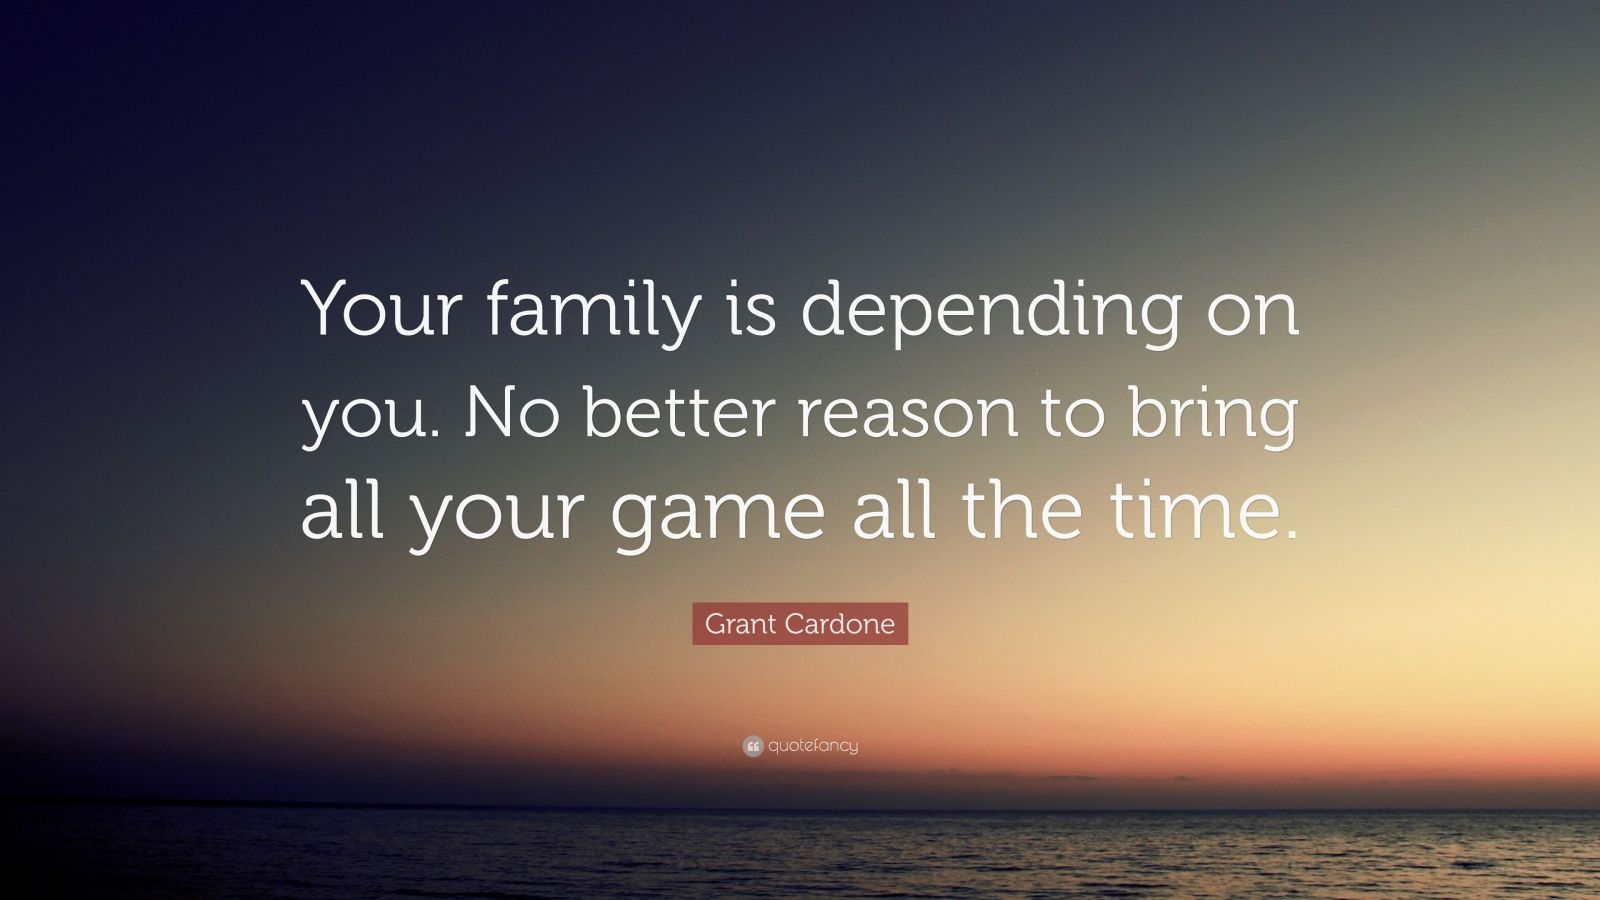 """Grant Cardone Quote: """"Your family is depending on you. No better reason to bring all your game all the time."""""""